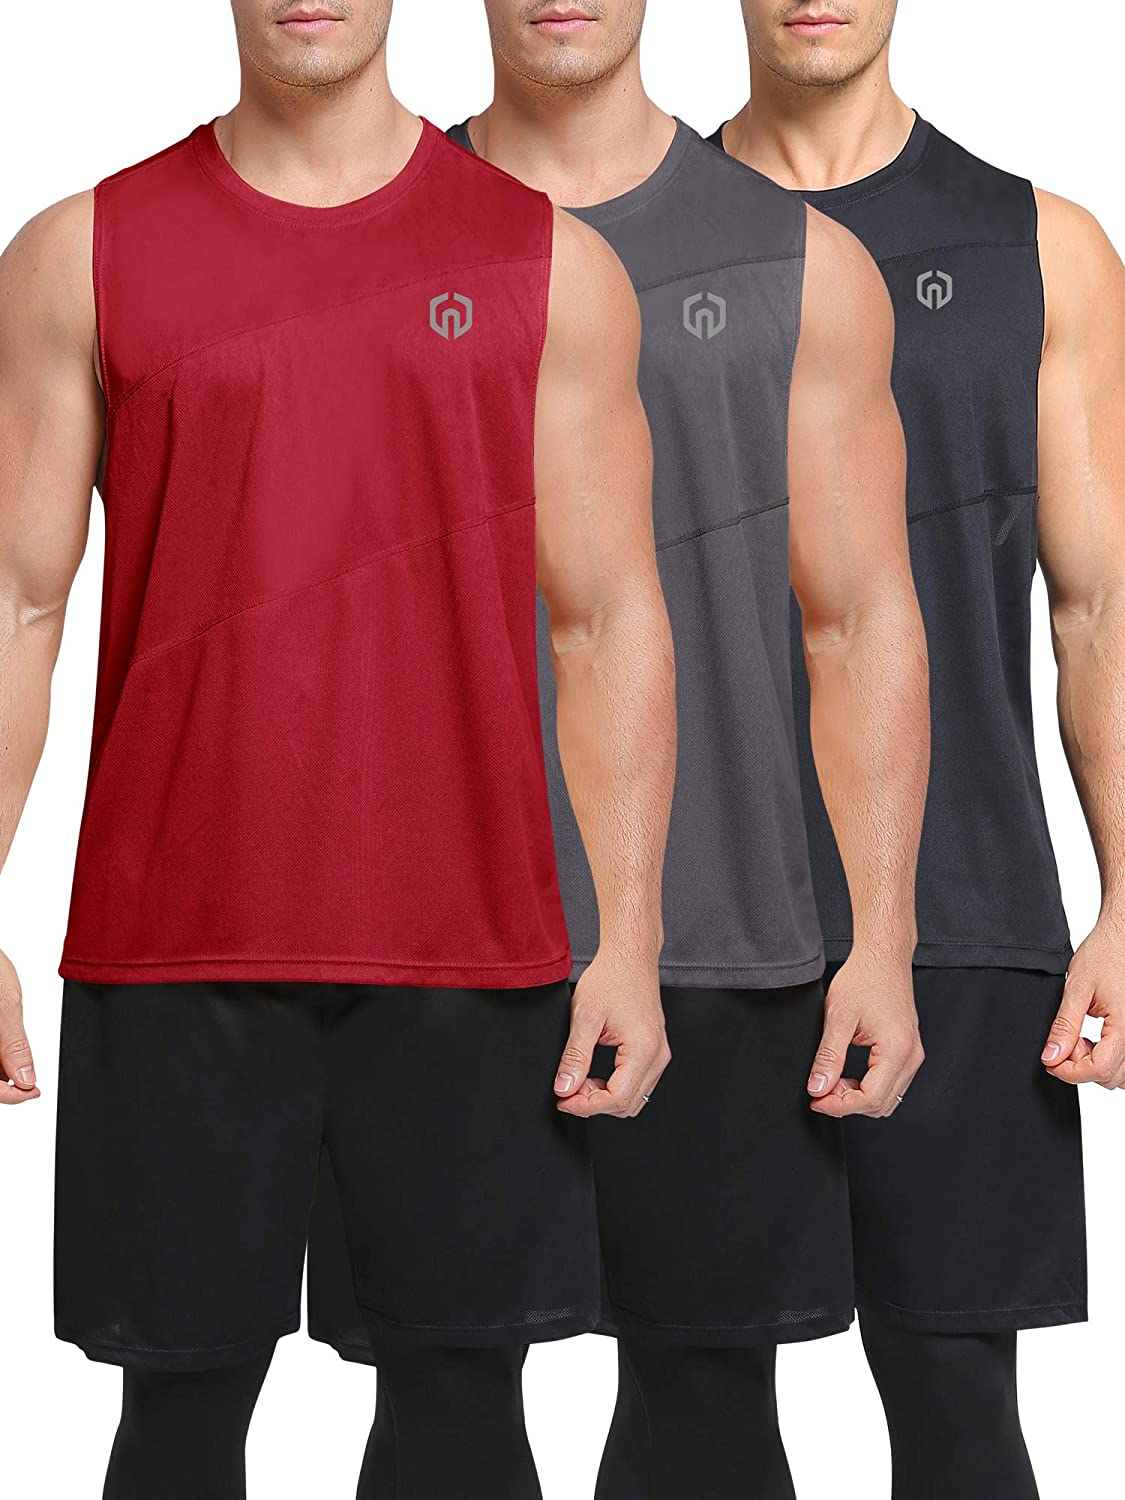 Neleus Men's 3 Pack Workout Tank Top Sleeveless Gym Shirt